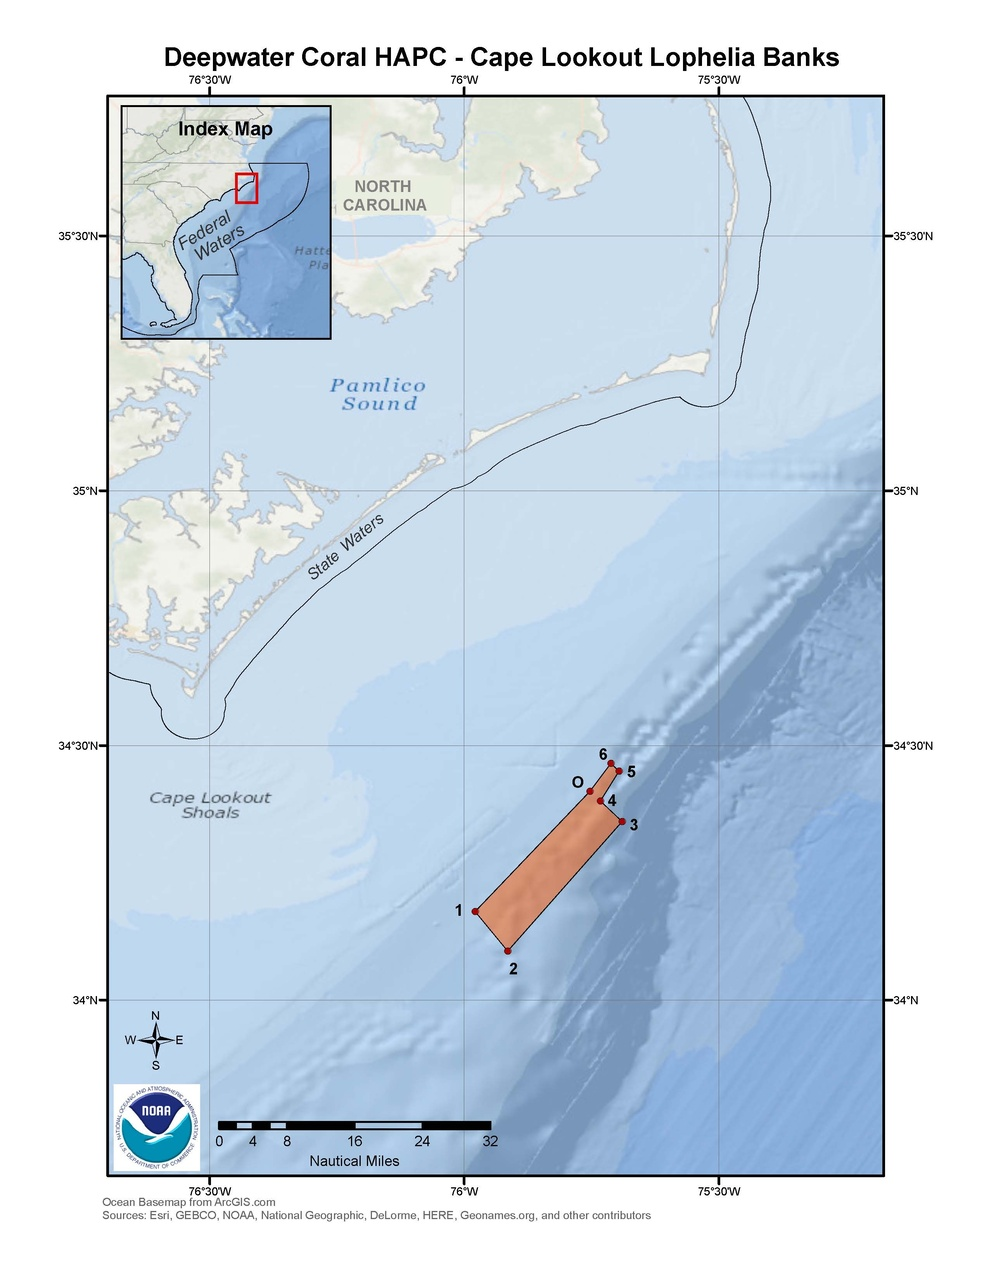 This is a map of the Cape Lookout Lophelia Banks Deepwater Coral HAPC in the South Atlantic Region.